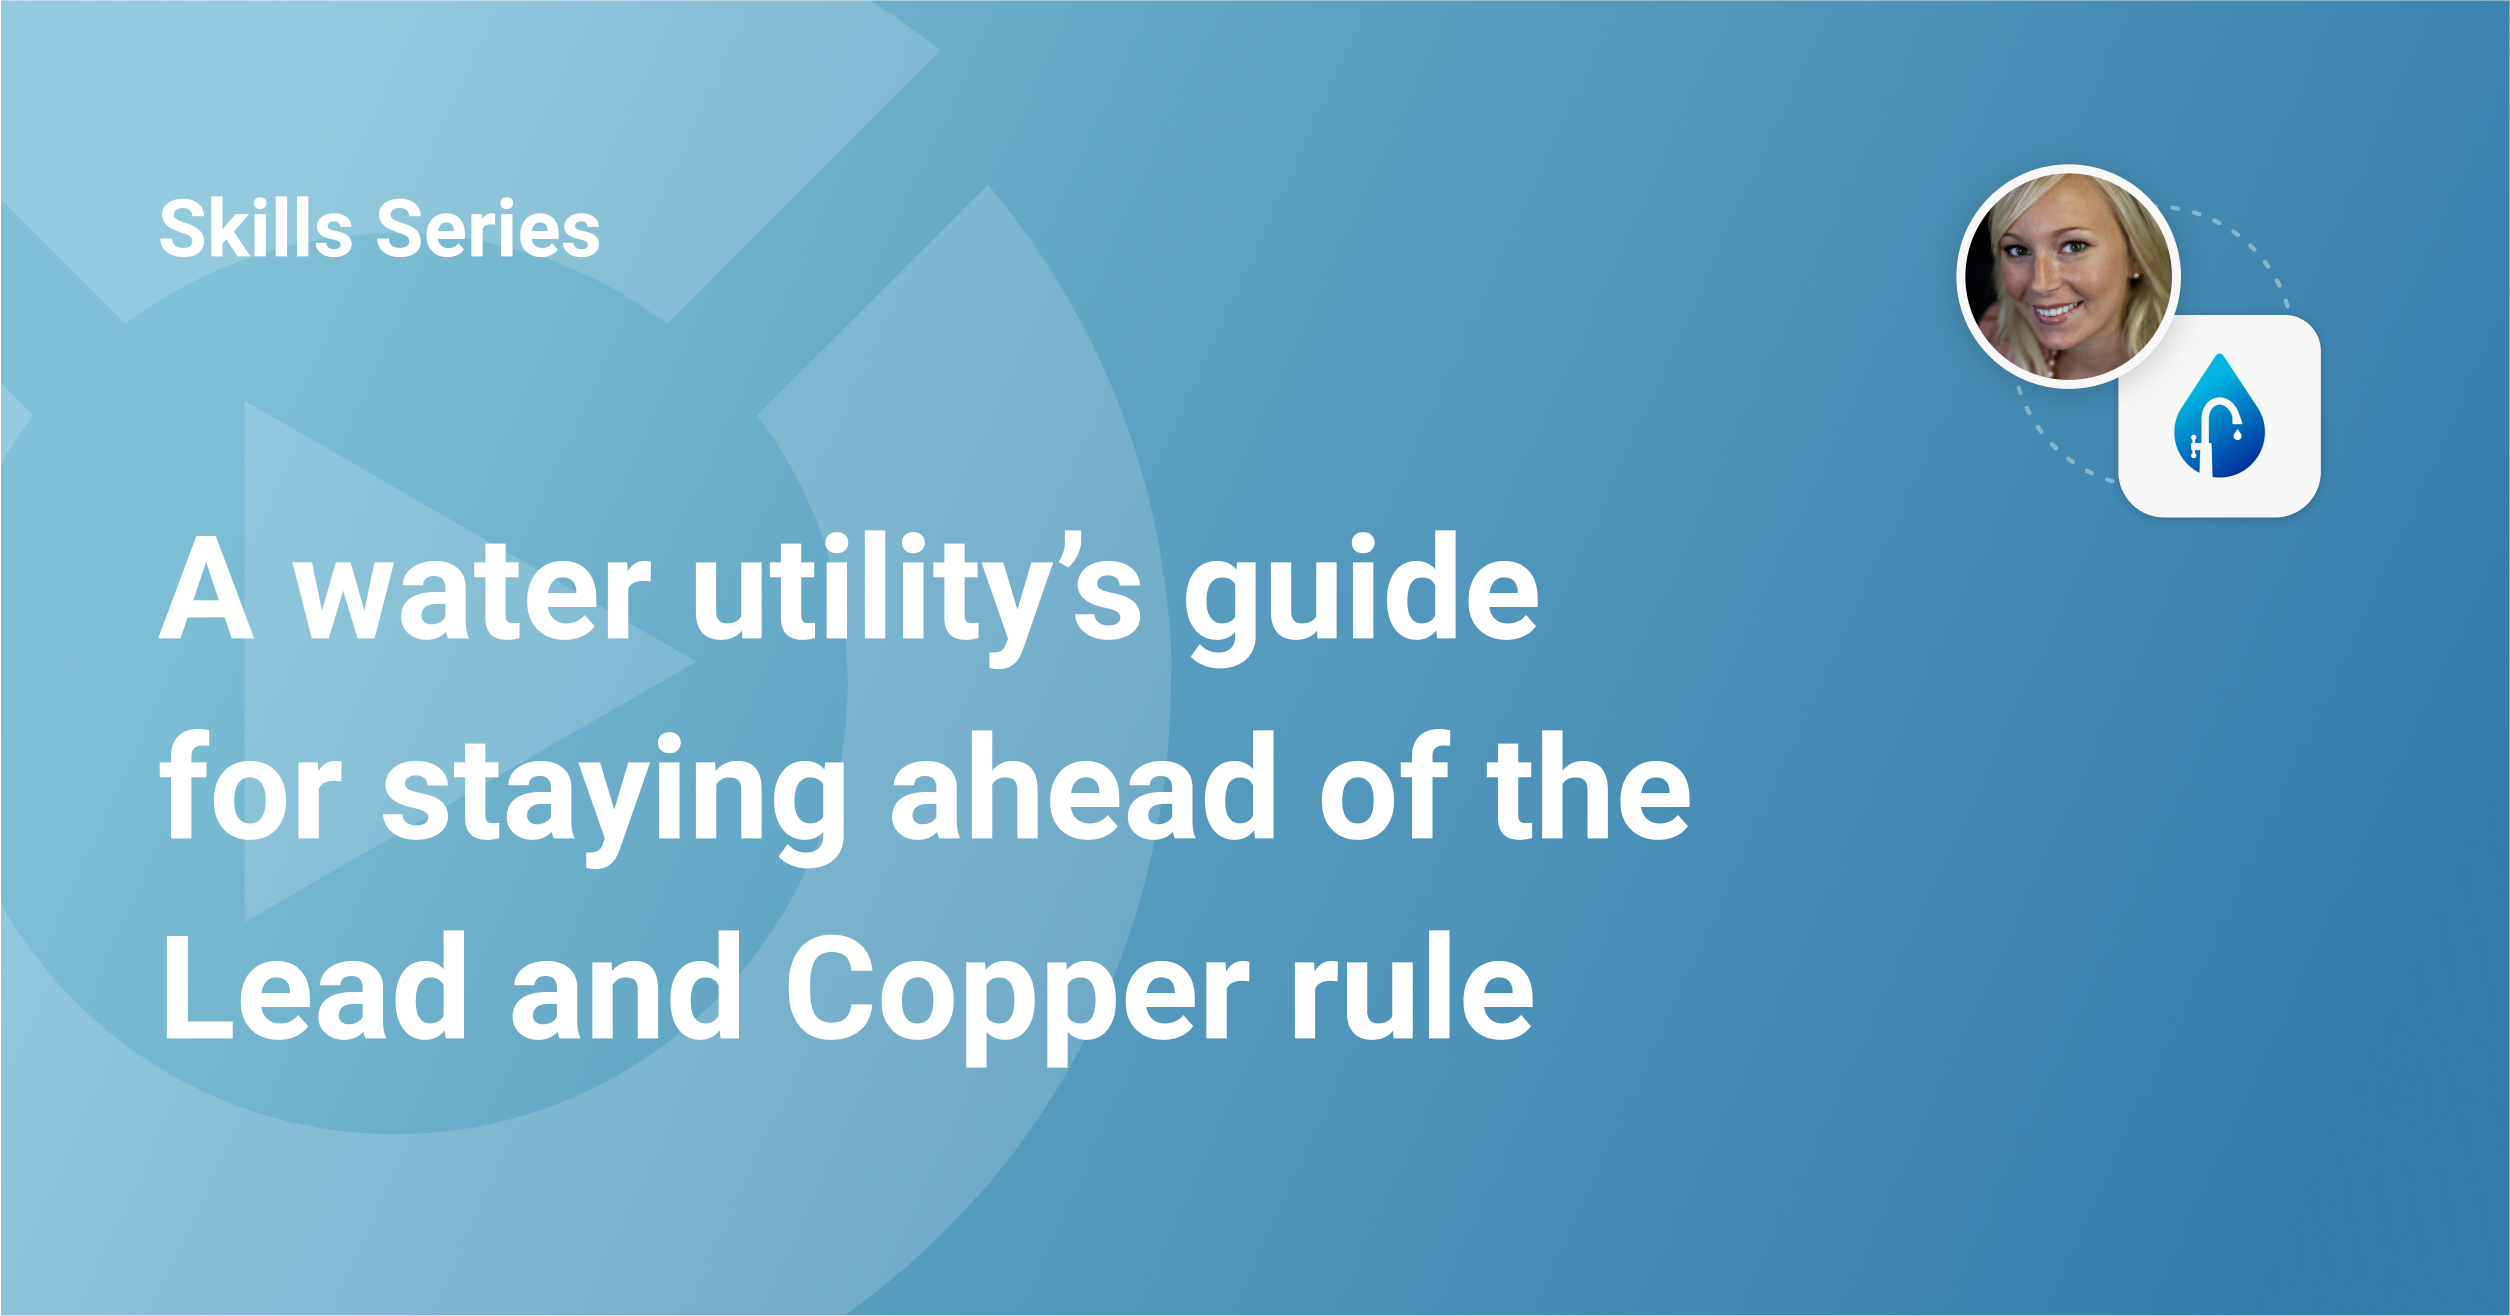 Utility Cloud - Skills Series - A water utilitys guide to lead and copper rule (1)